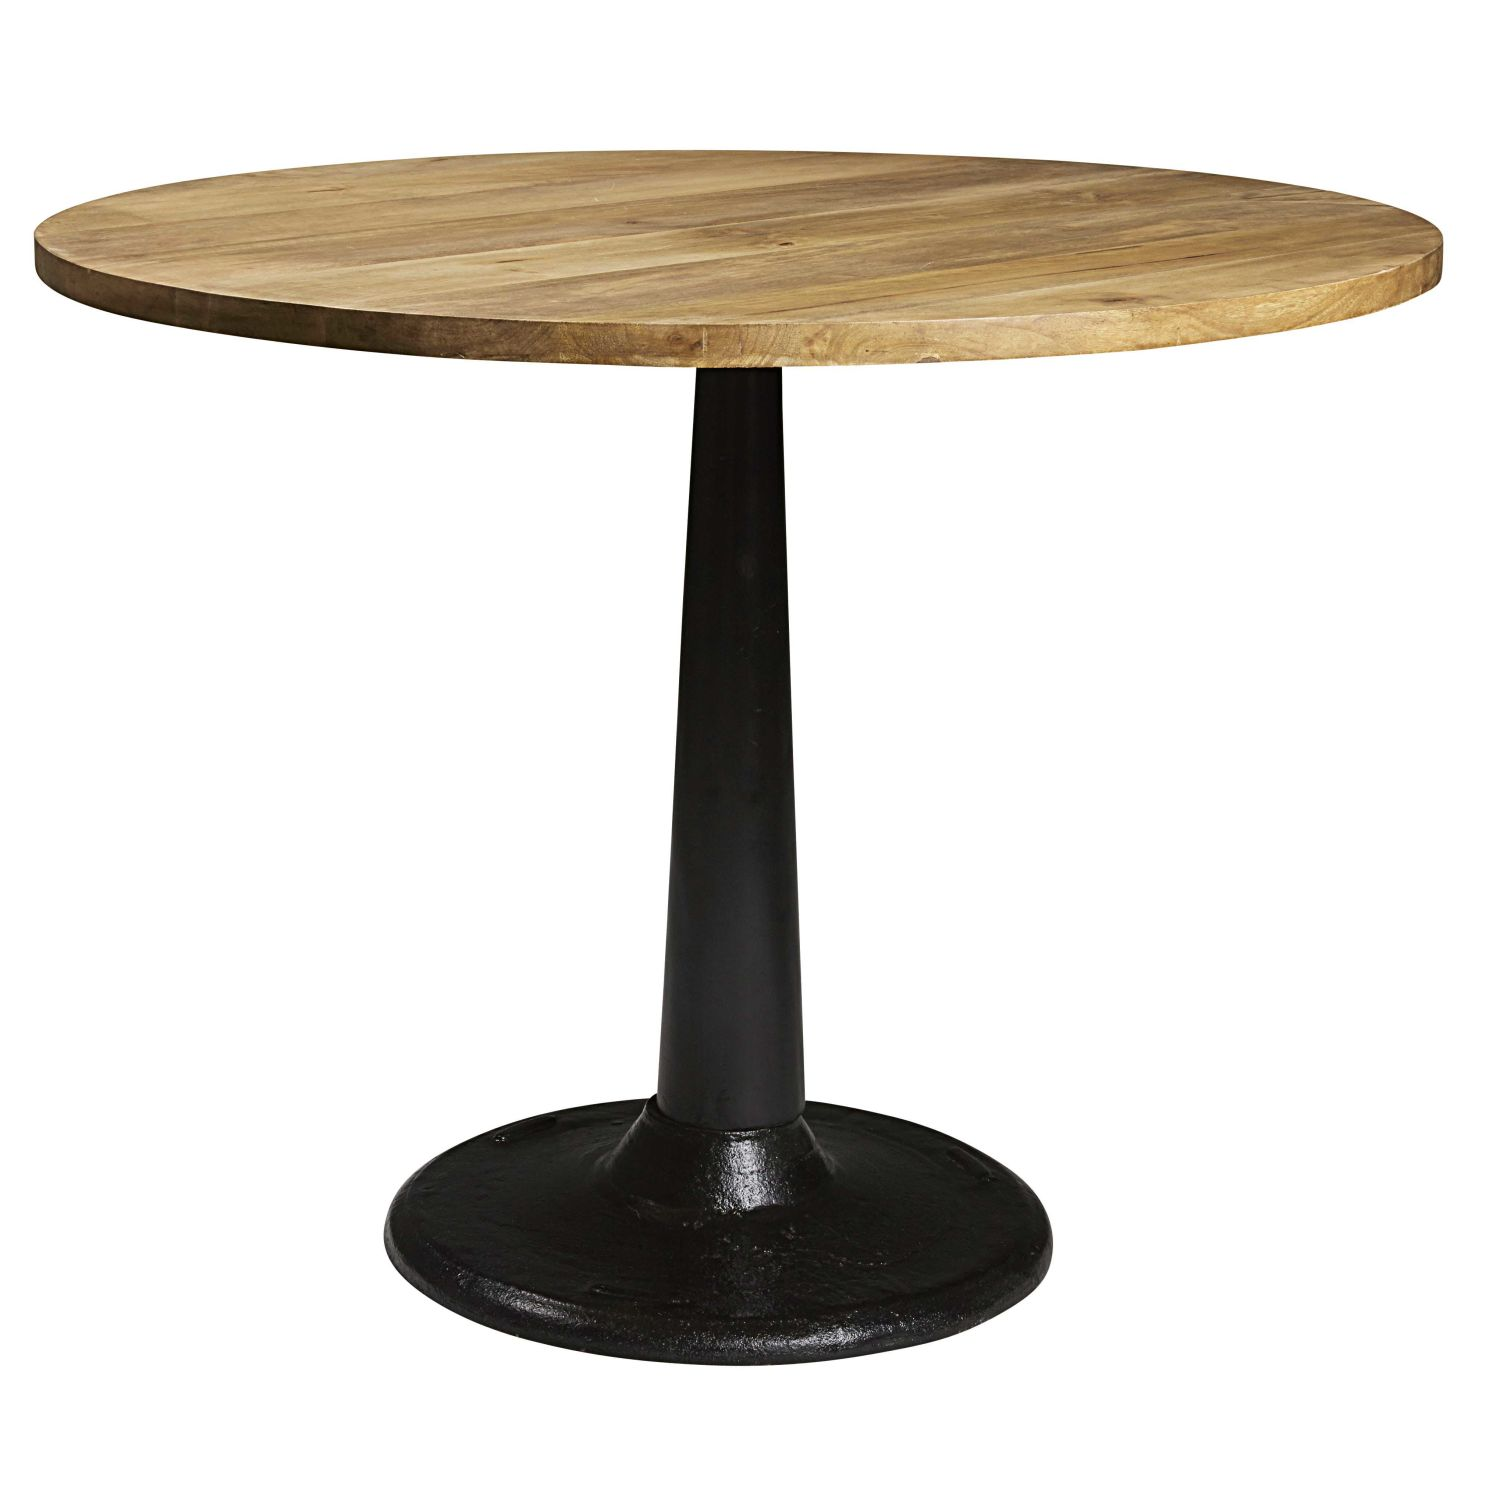 solid mango wood and black metal dining table d 115 maisons du monde